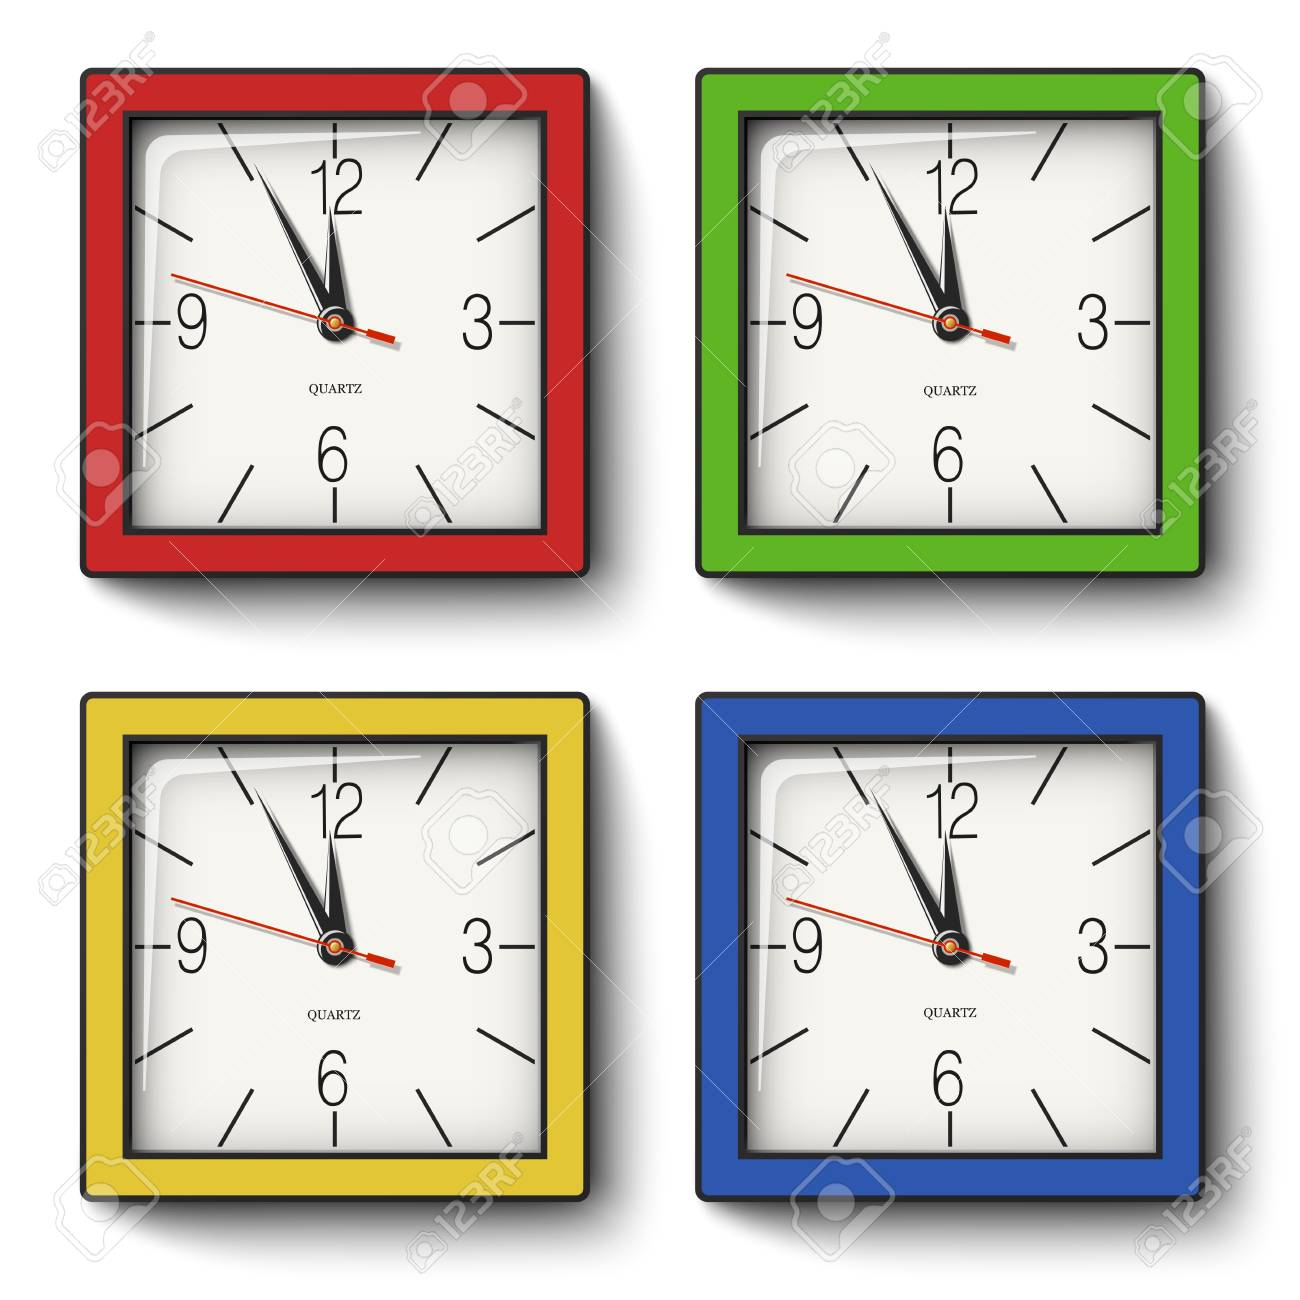 Collection Of Square Wall Clocks In Red Green Yellow Blue Royalty Free Cliparts Vectors And Stock Illustration Image 112235040